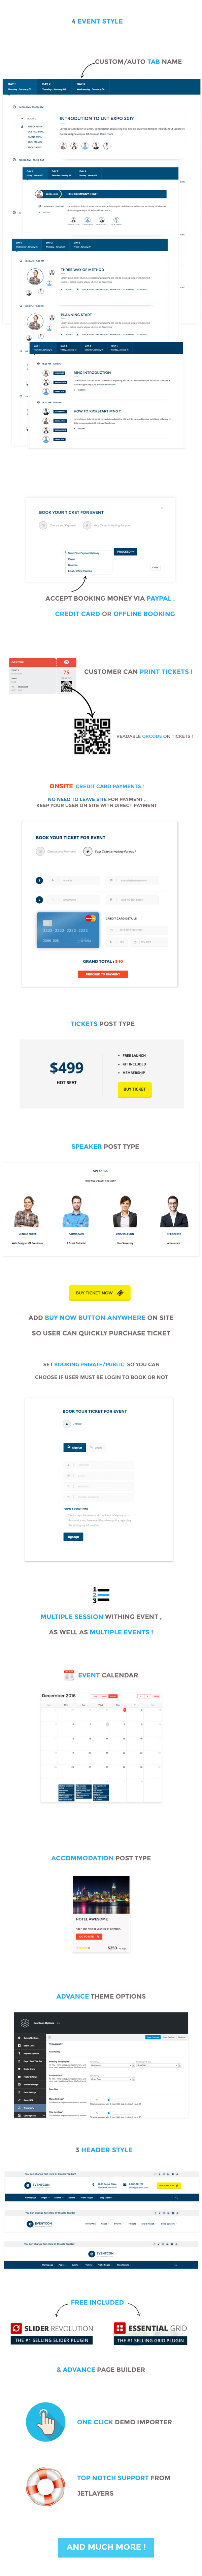 eventcon event Conference wordpress theme's features